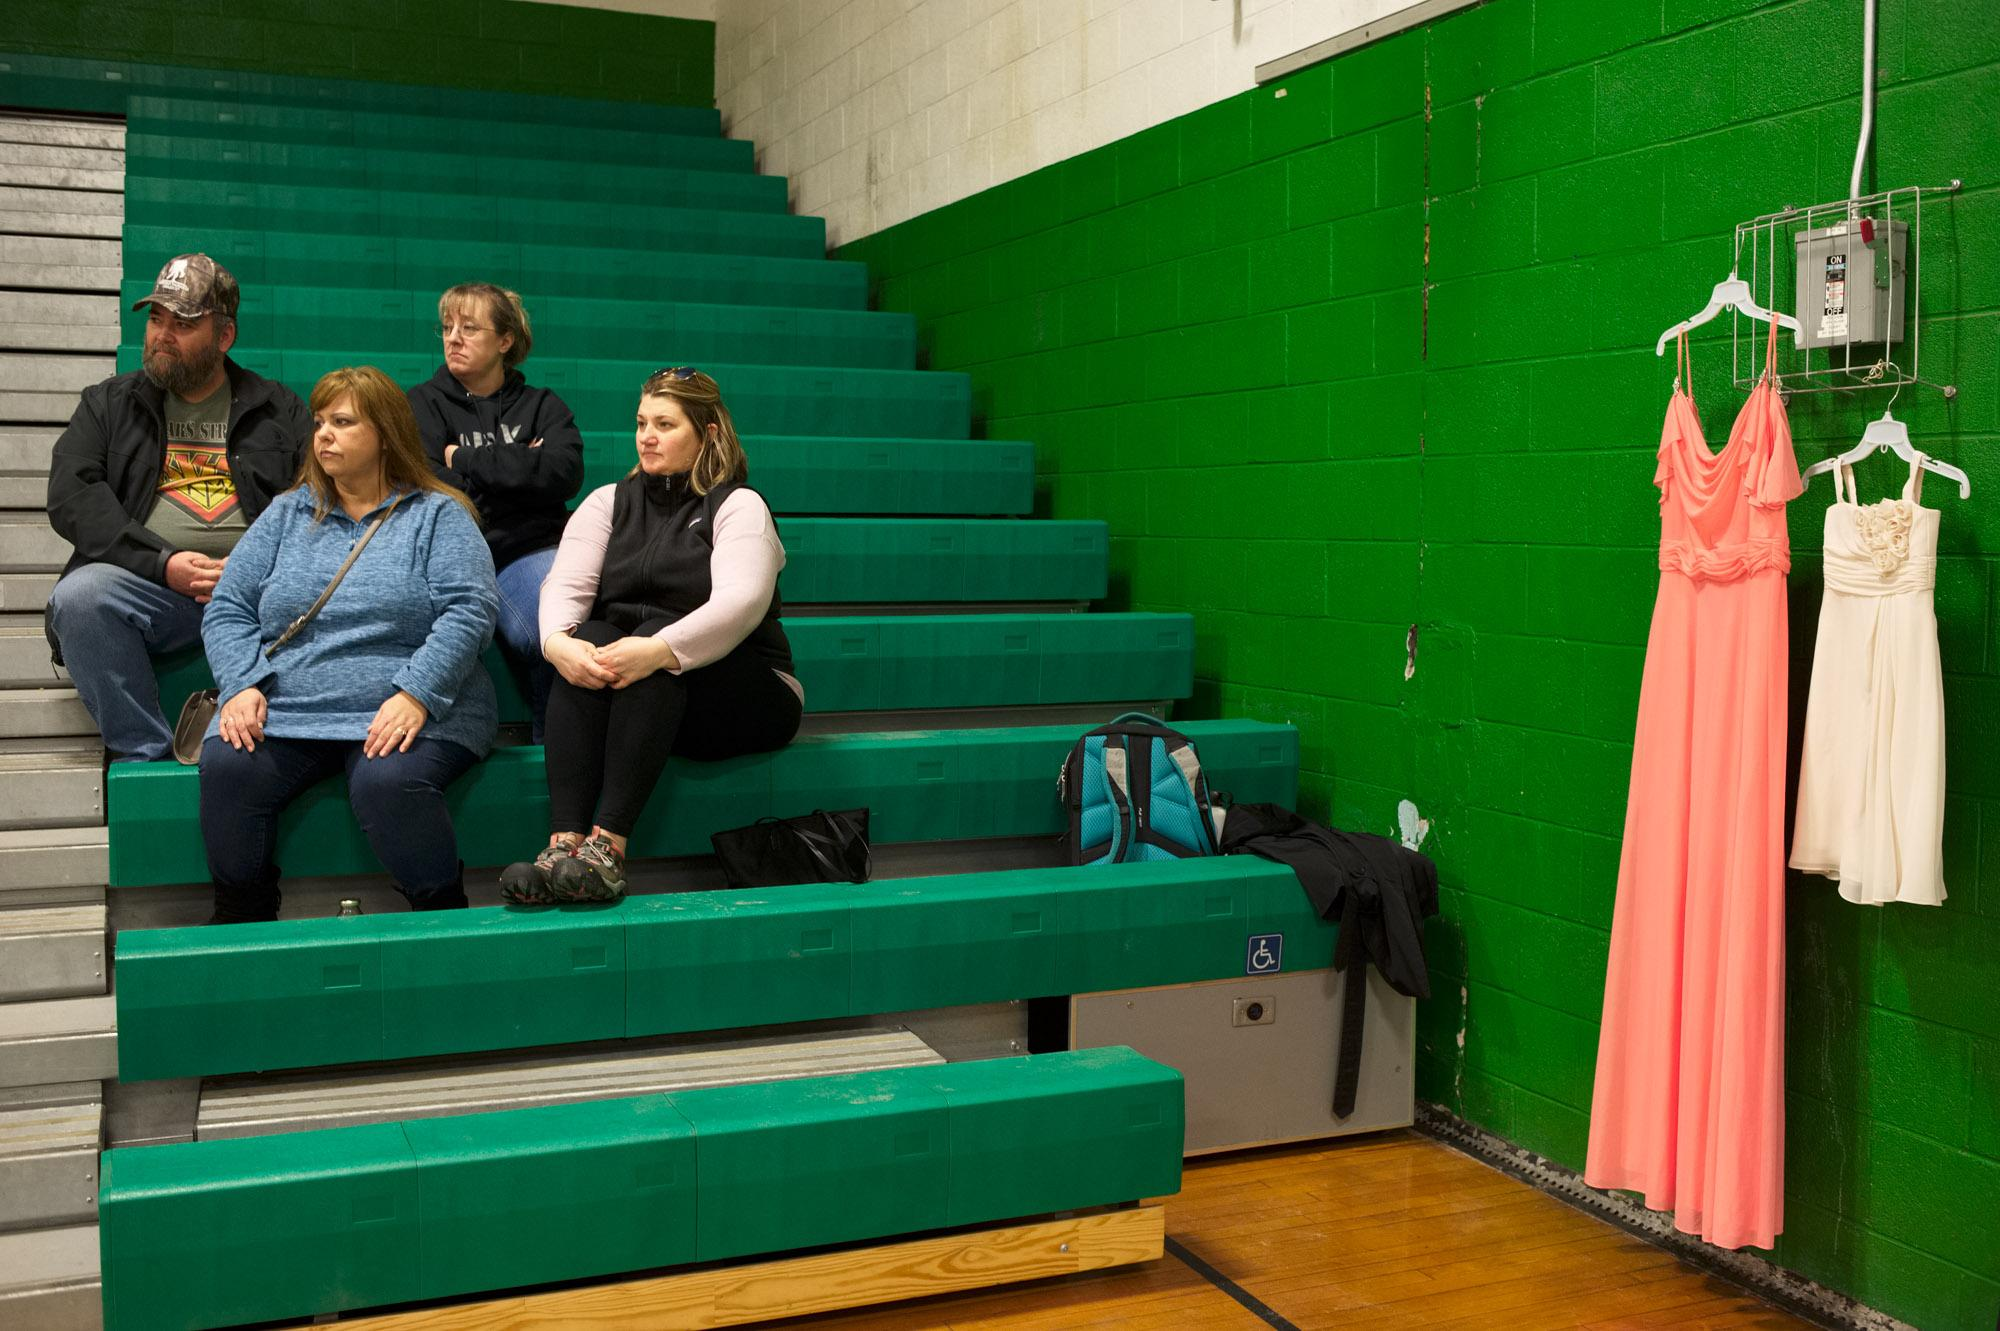 Parents watch as participants of the 63rd Apple Blossom Cotillion do their first rehearsal in the gym of the Riverside School. On the right a display of the dresses the older and younger girls will be wearing during the dance show, in the colors coral pink and creme. The color of the dresses changes every year, in 2017 it was red, in 2018 yellow. Springfield, Vermont, USA. January 2019.